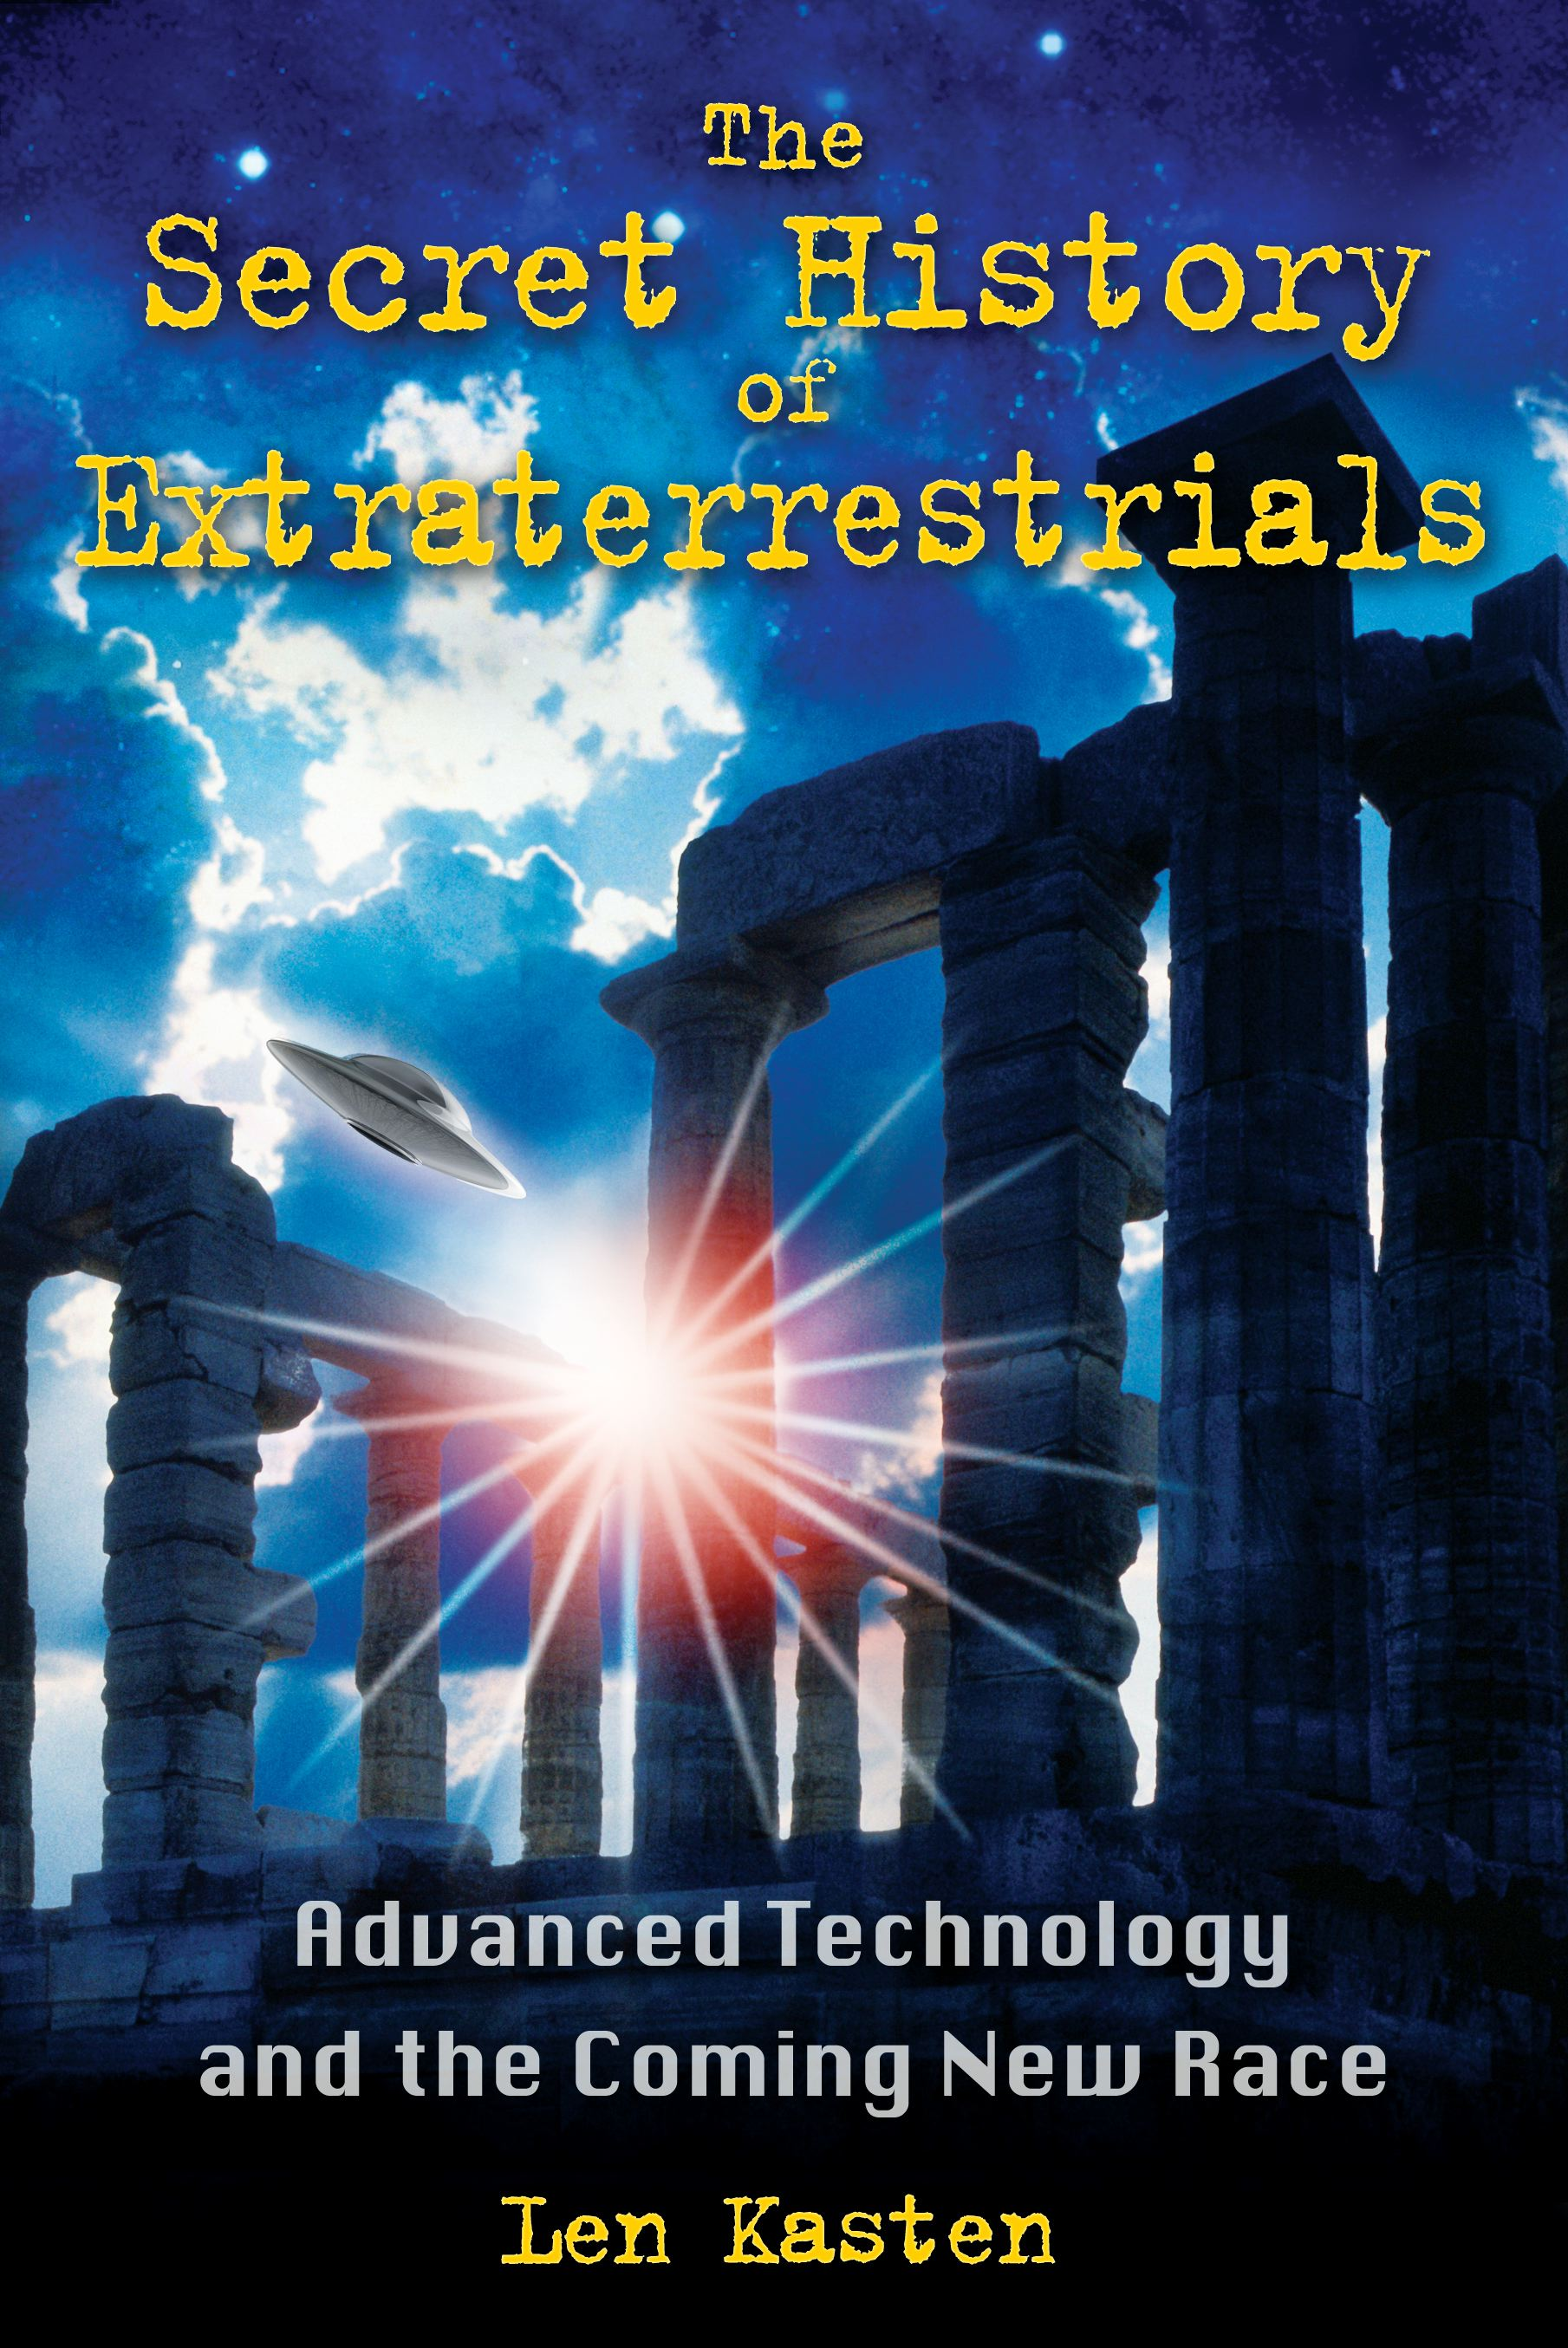 The-secret-history-of-extraterrestrials-9781591431152_hr